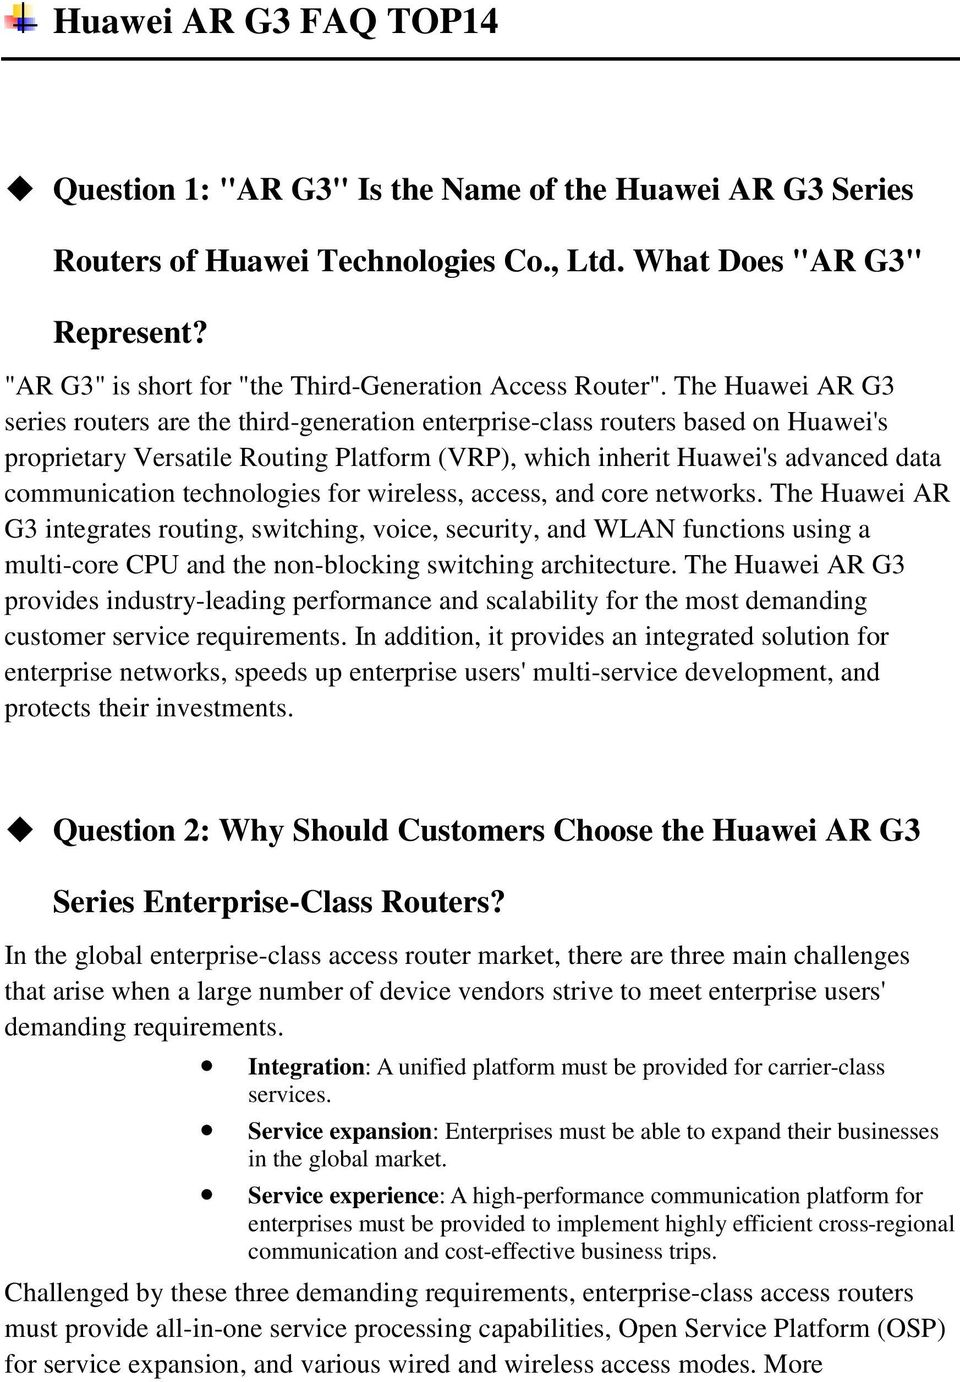 The Huawei AR G3 series routers are the third-generation enterprise-class routers based on Huawei's proprietary Versatile Routing Platform (VRP), which inherit Huawei's advanced data communication